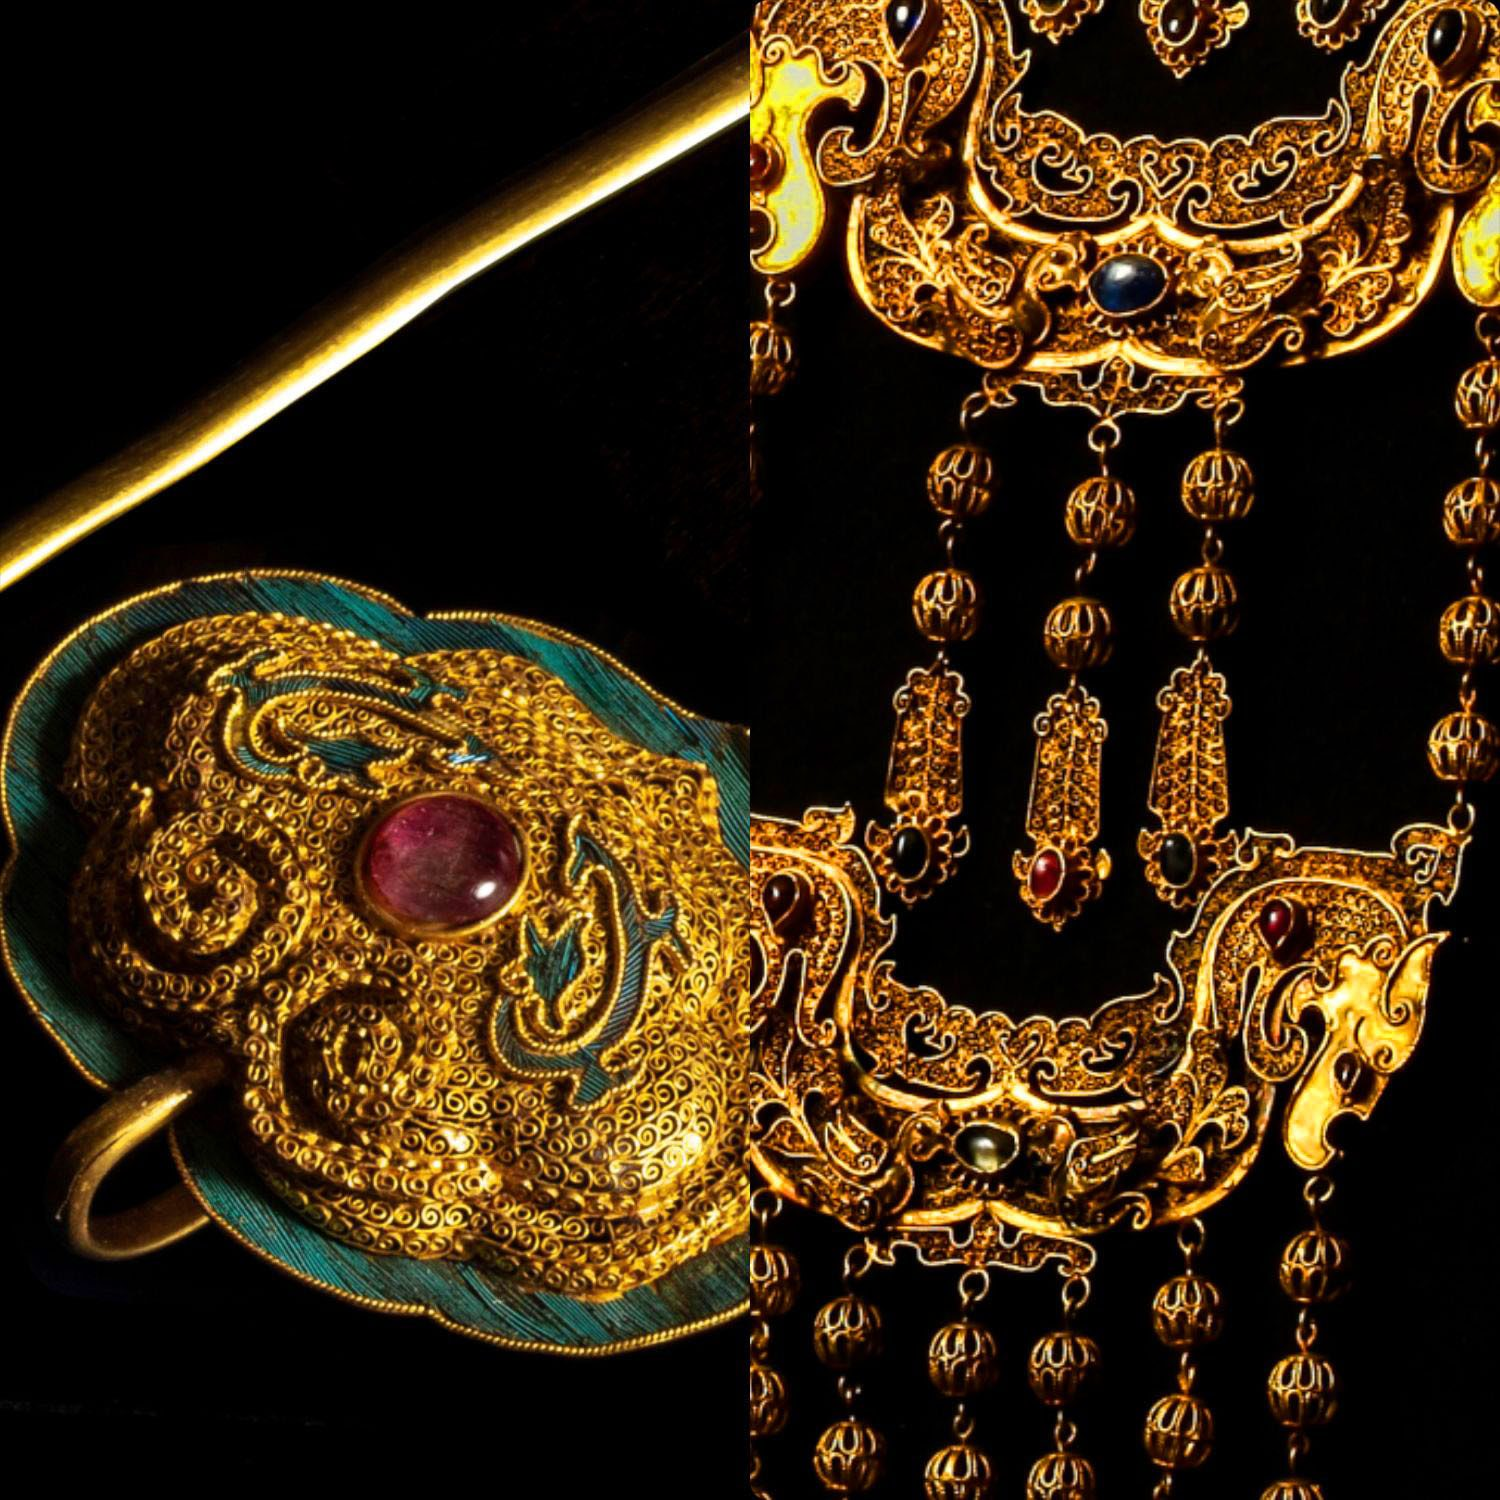 Renaissance of Chinese Imperial jewelry by RUNWAY MAGAZINE